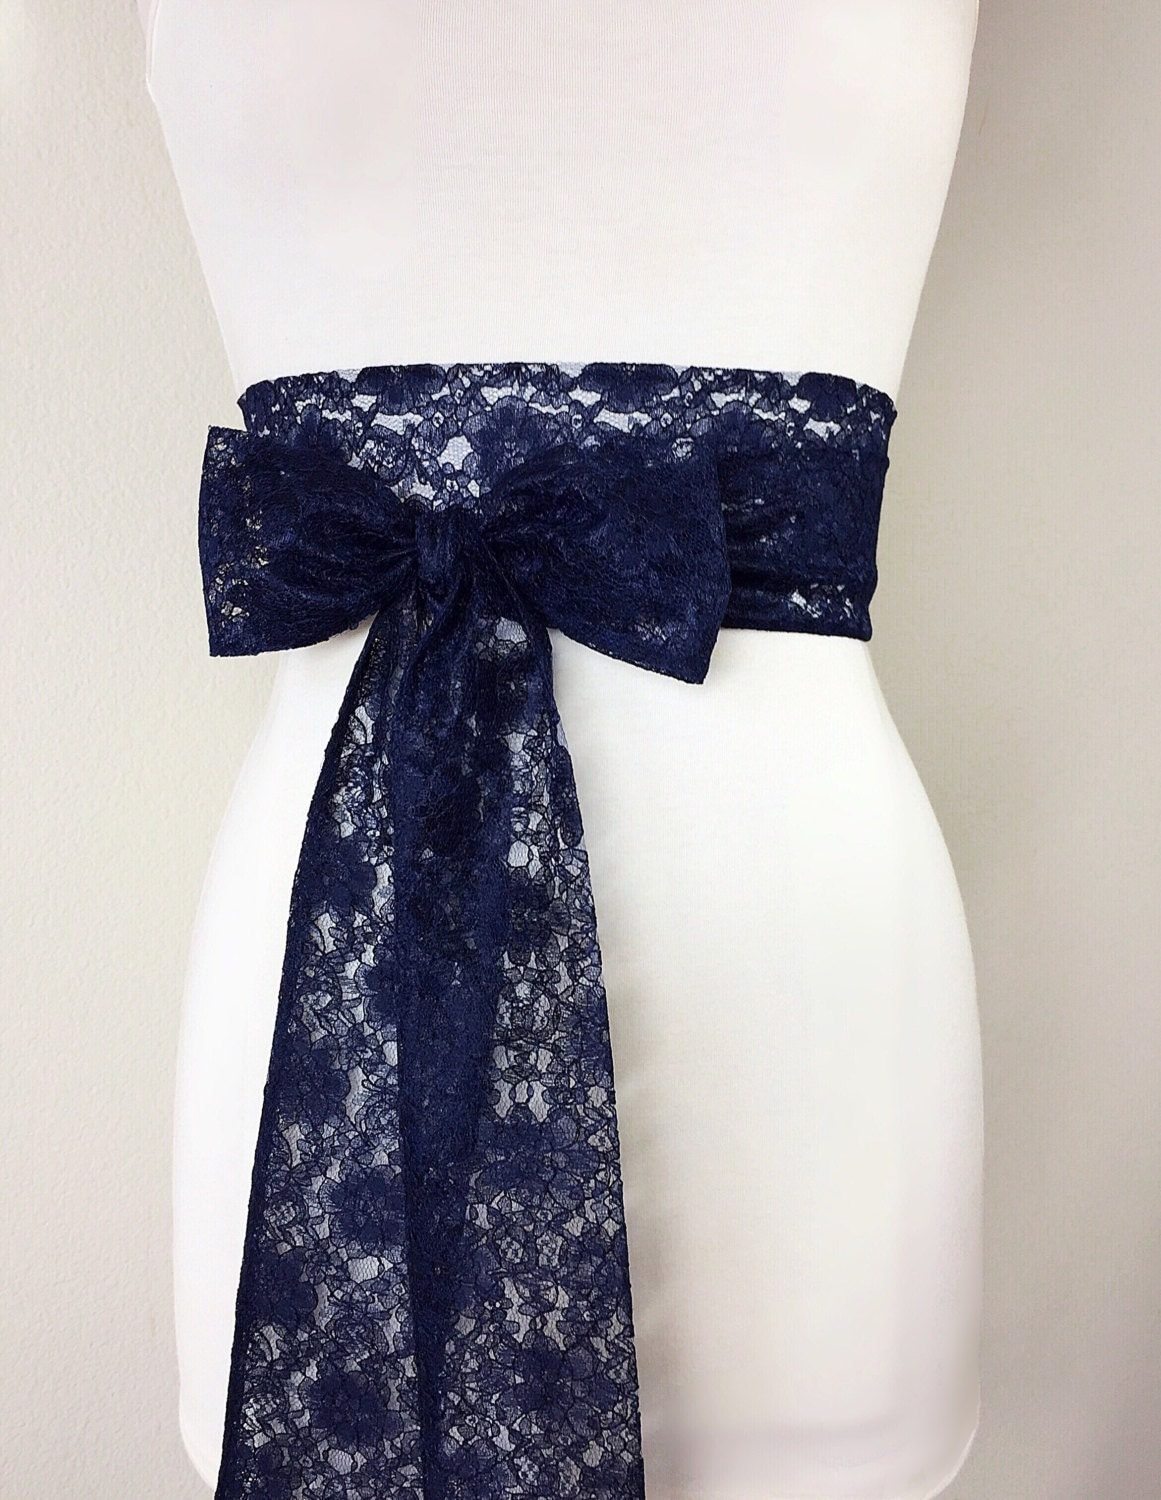 Navy lace sash navy blue lace sash extra long wedding dress for Blue sash for wedding dress